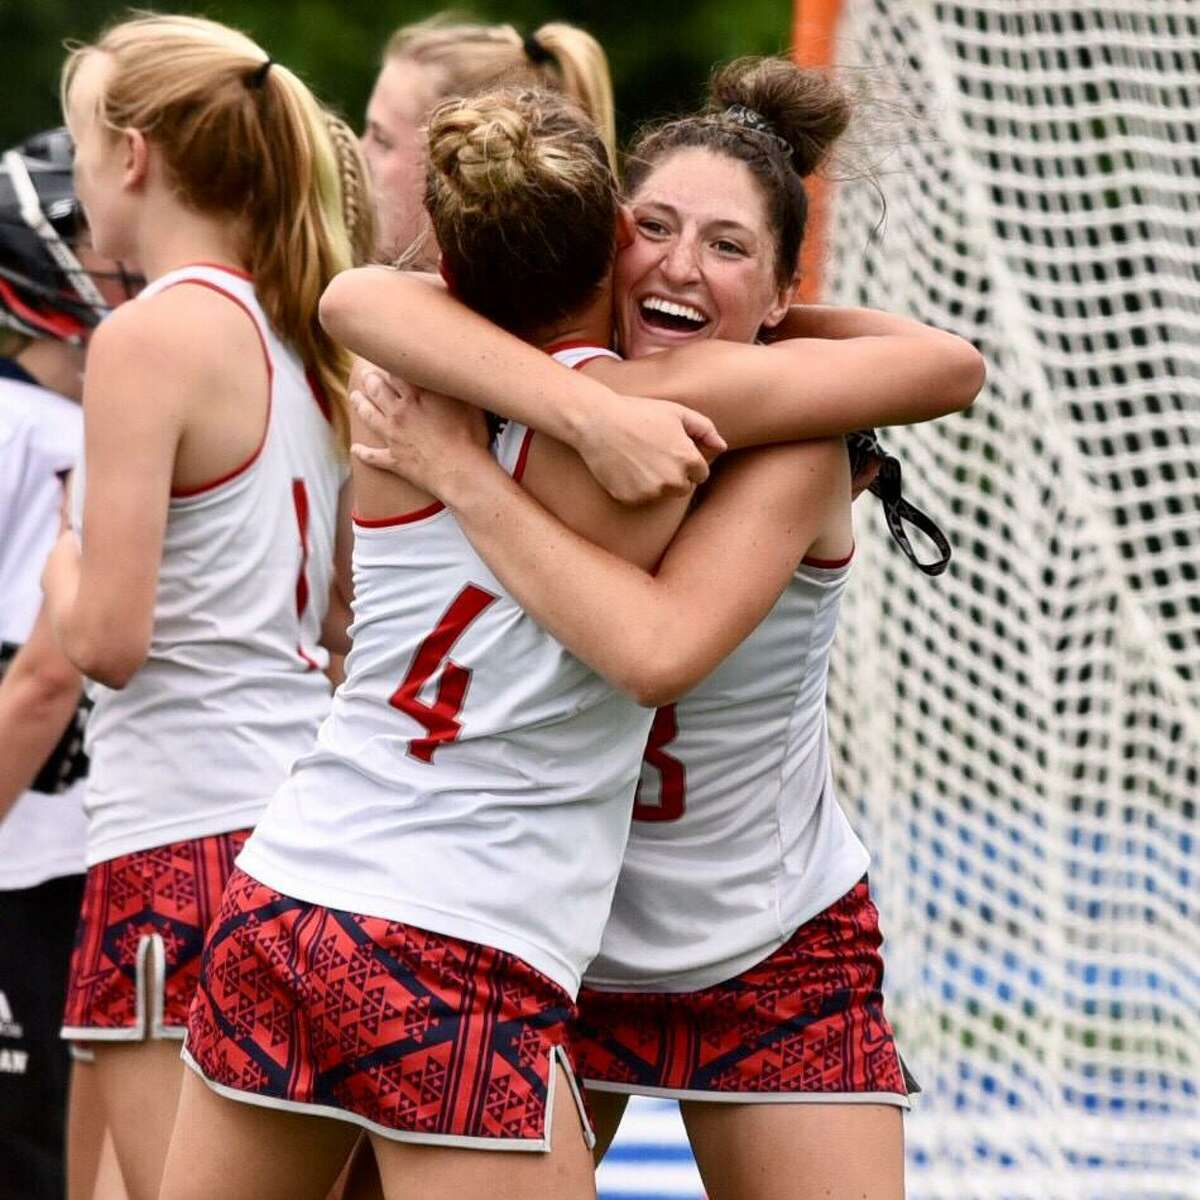 New Fairfield's Jordan Siemonsen (4) and Reagan Tenaglia celebrate their 11-8 win over Weston for the Class S girls lacrosse championship on Saturday at Bunnell in Stratford.